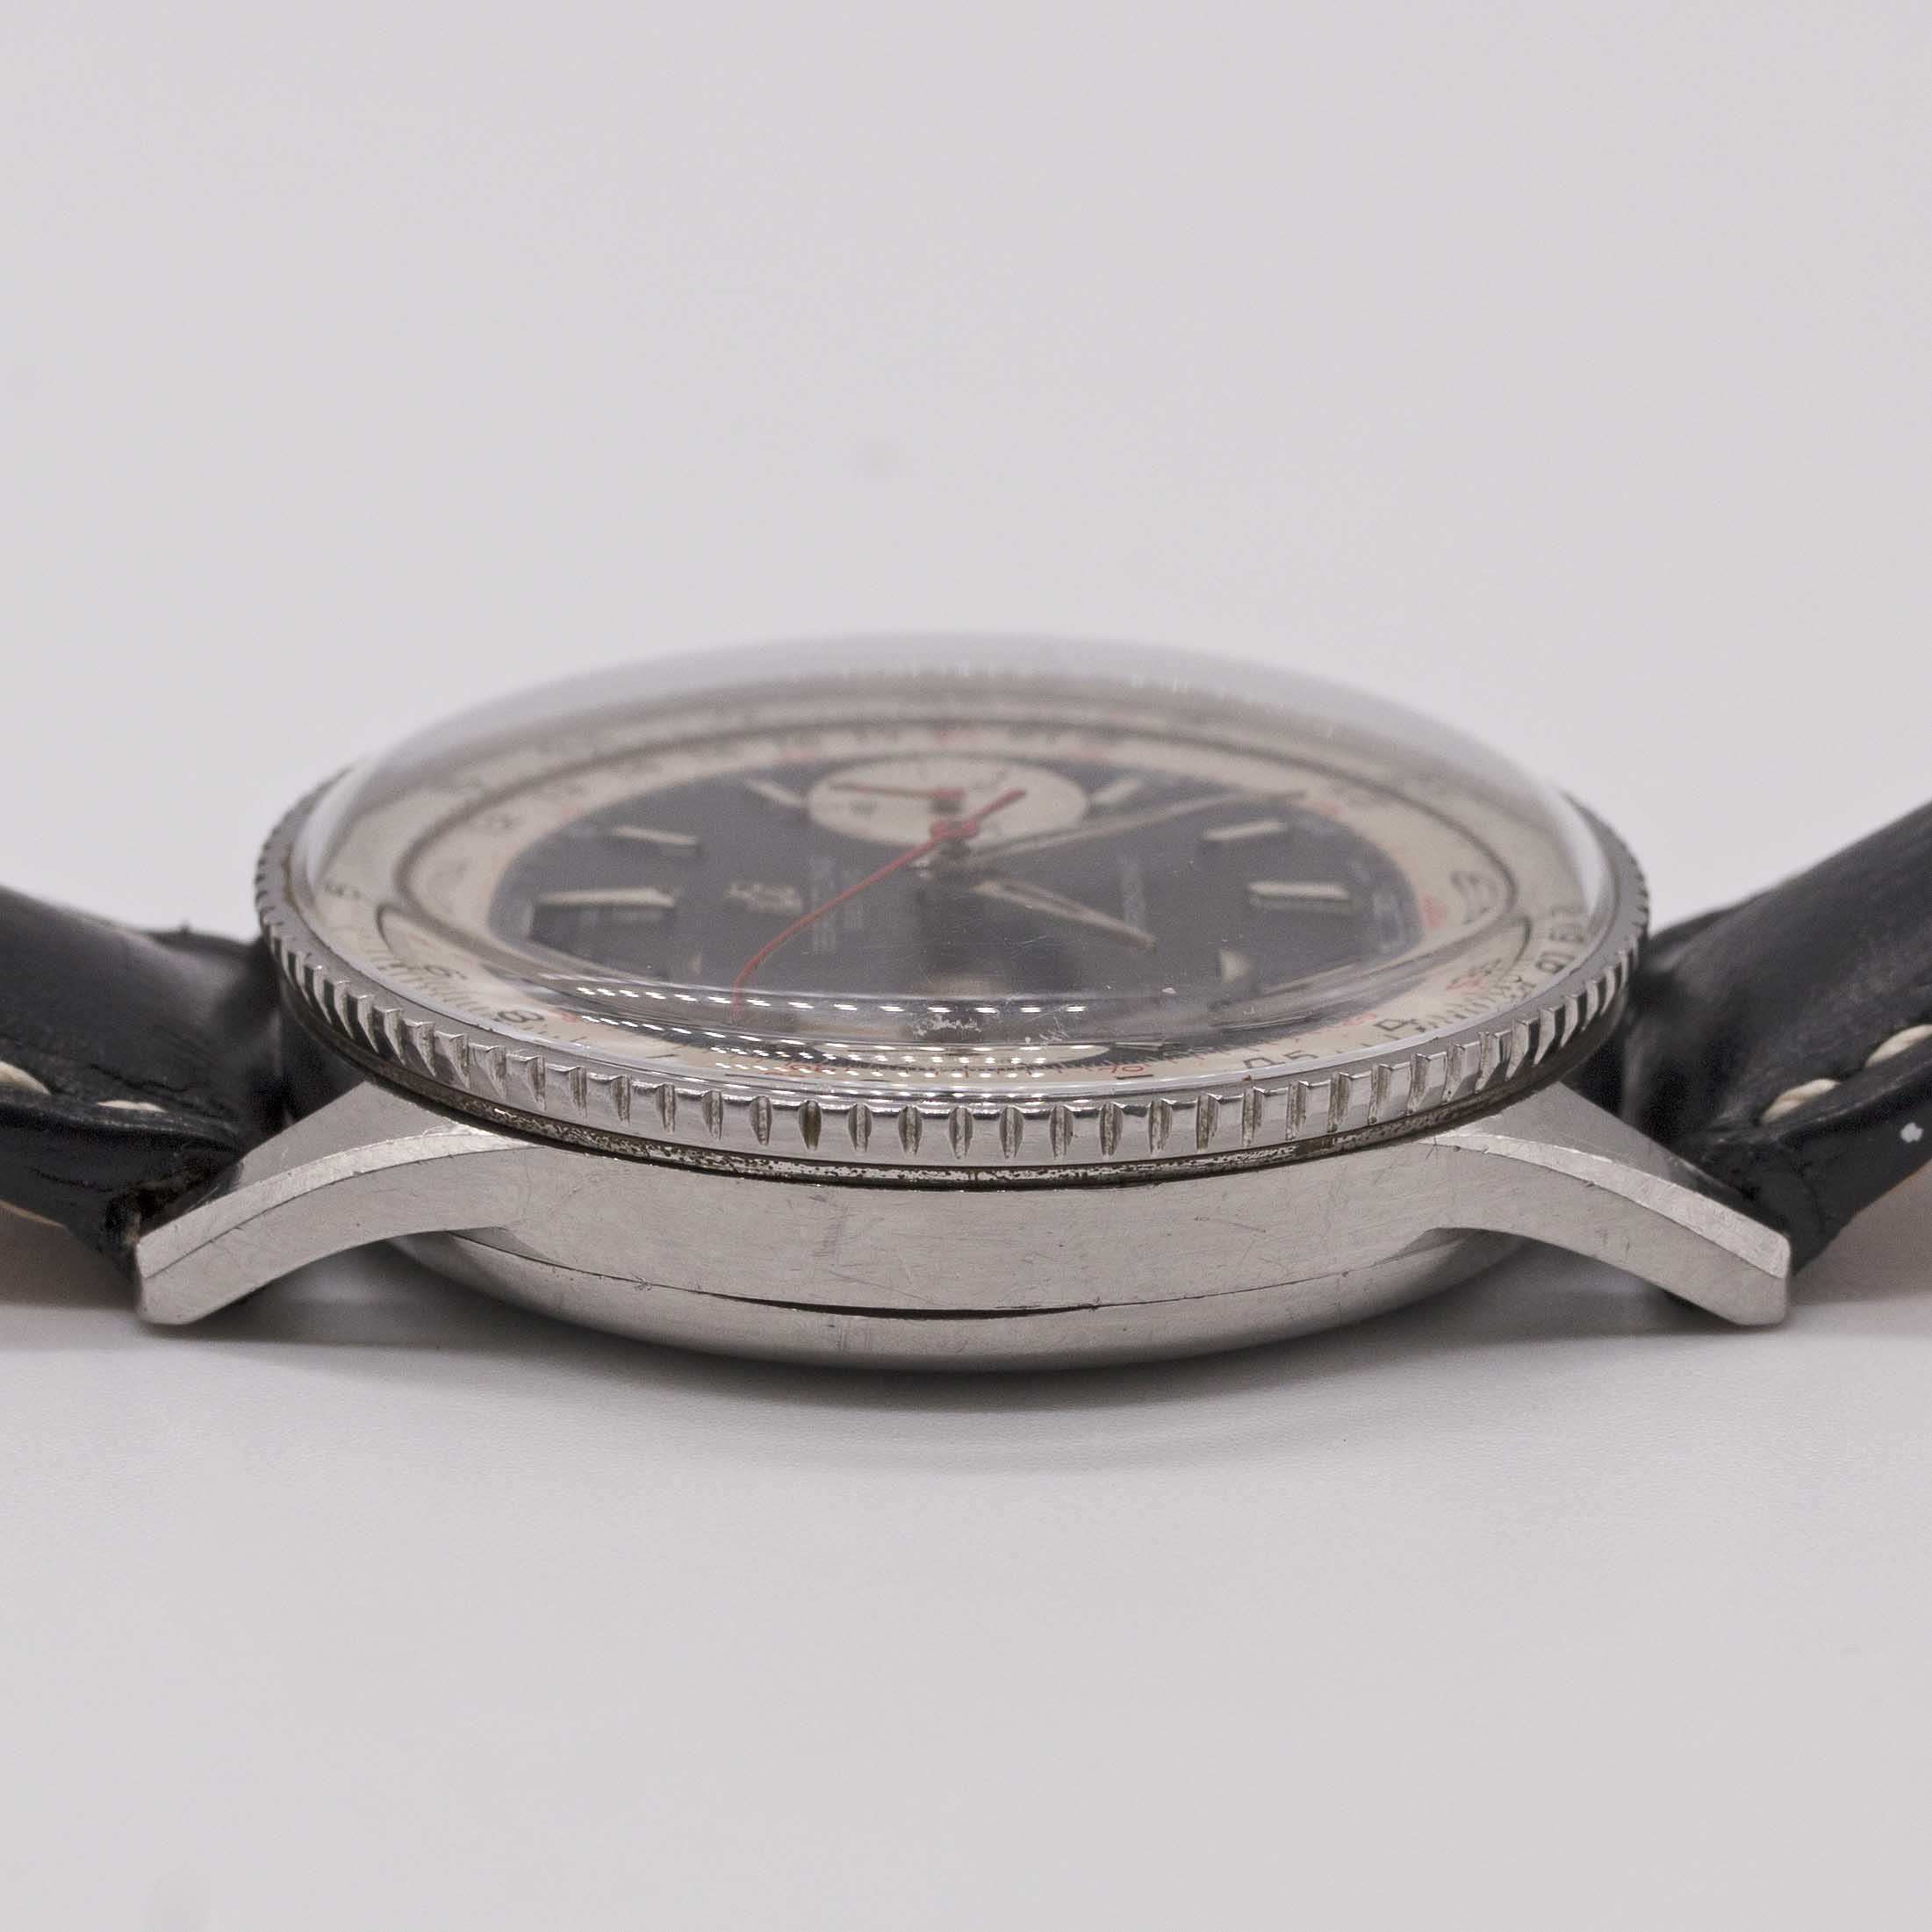 Lot 25 - A GENTLEMAN'S STAINLESS STEEL BREITLING CHRONOMAT CHRONOGRAPH WRIST WATCH CIRCA 1963, REF. 808